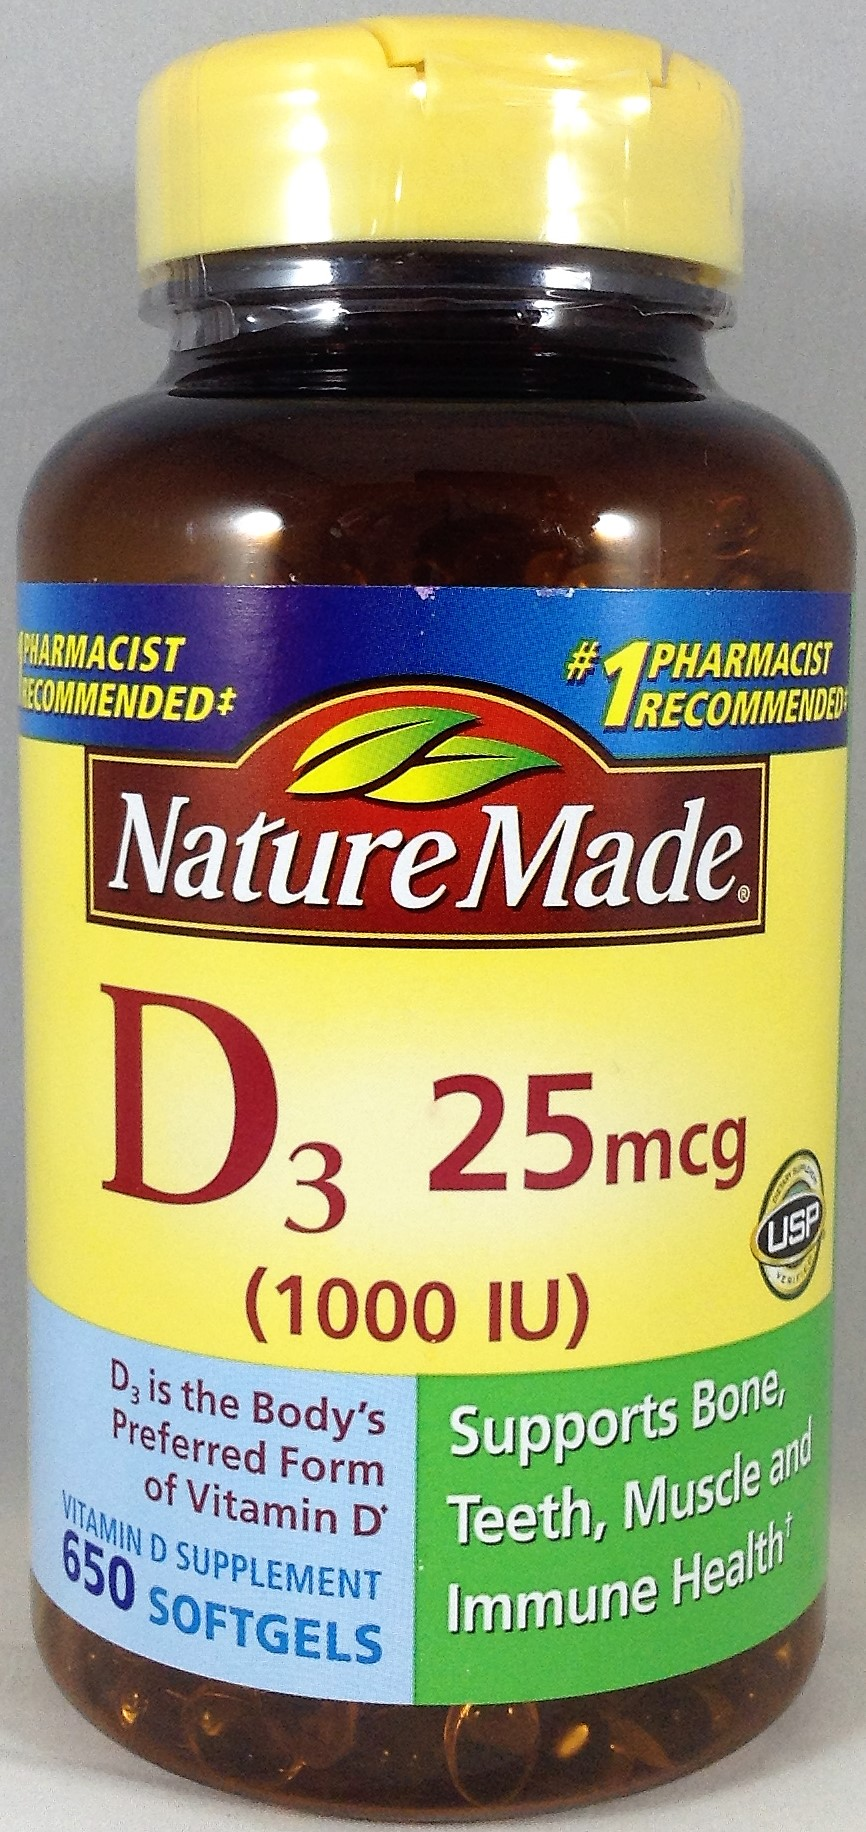 Nature Made Vitamin D3, 25 mcg (1000 IU) - 650 Softgels ...